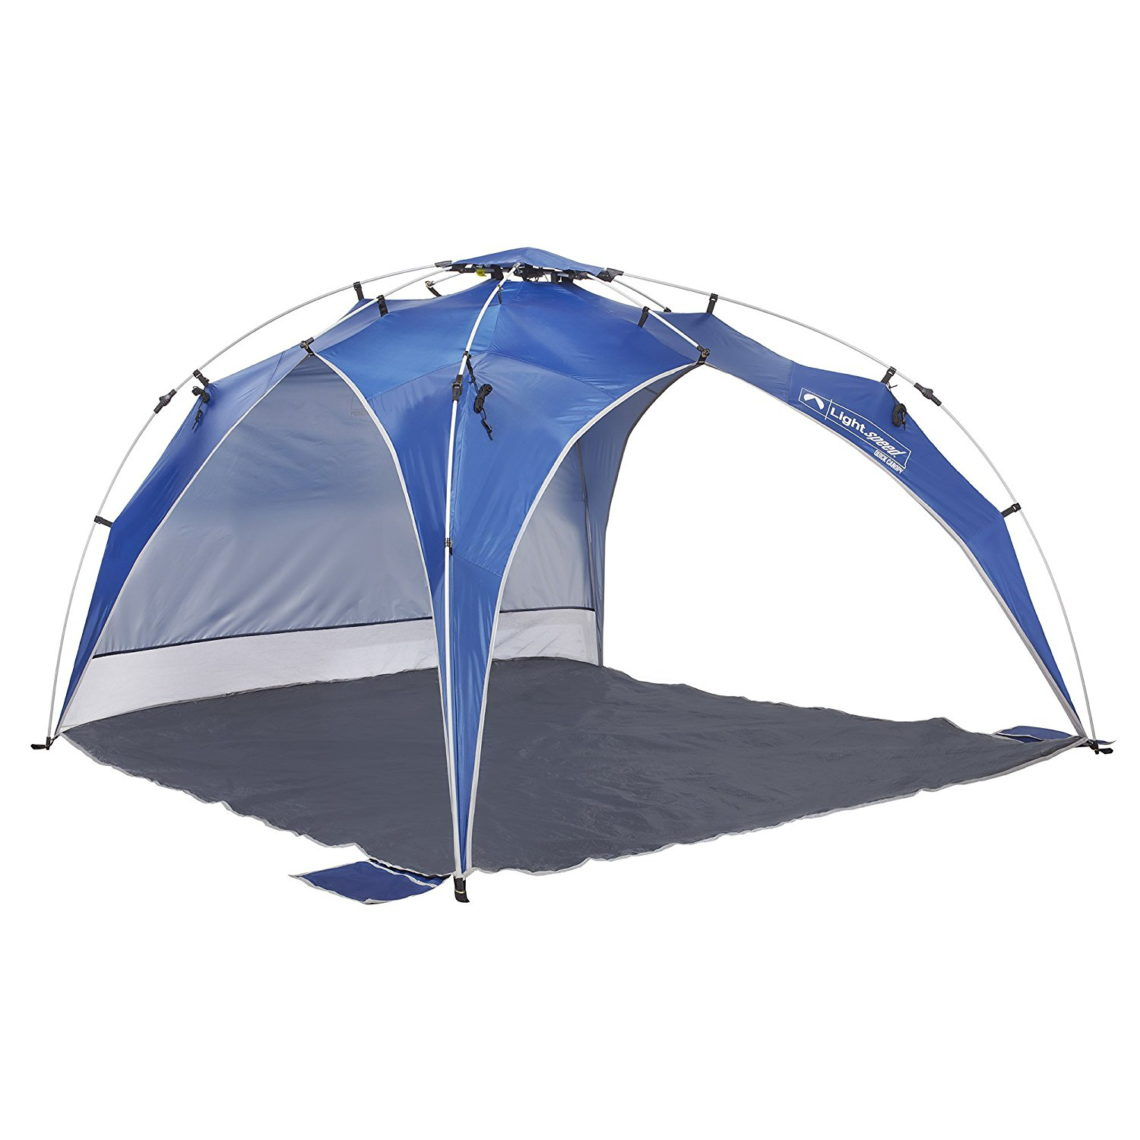 And Many Offer Built In Floors Which Keep Gear Toes Off Hot Sand Here Are Some Highly Rated Canopies To Consider For Your Beach Vacation